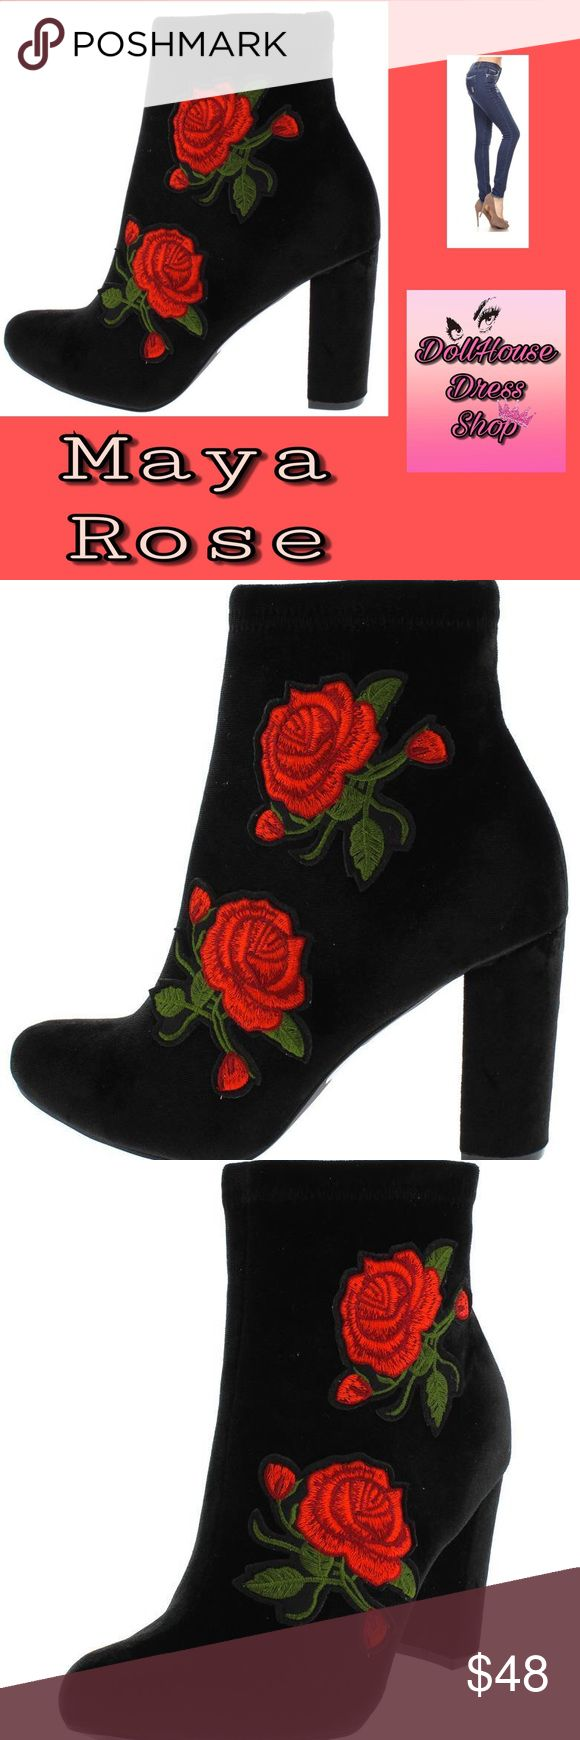 Hot!!! Velvet Maya Rose Embroidered Blk You'll fall in love with how velvety smooth these Booties are. Definitely should be in every divas closet. Very good quality and comfy to walk in.   Diva alert!!! Your outfit will be the hit of the season with these boots!  Features red embroidered roses down the outer side of the boot. Side zipper closure.  Almond toe paired with a covered heel.  Man made materials.  Approximate heel height 3 1/2 inches  I offer gift wrap services for free! Please…